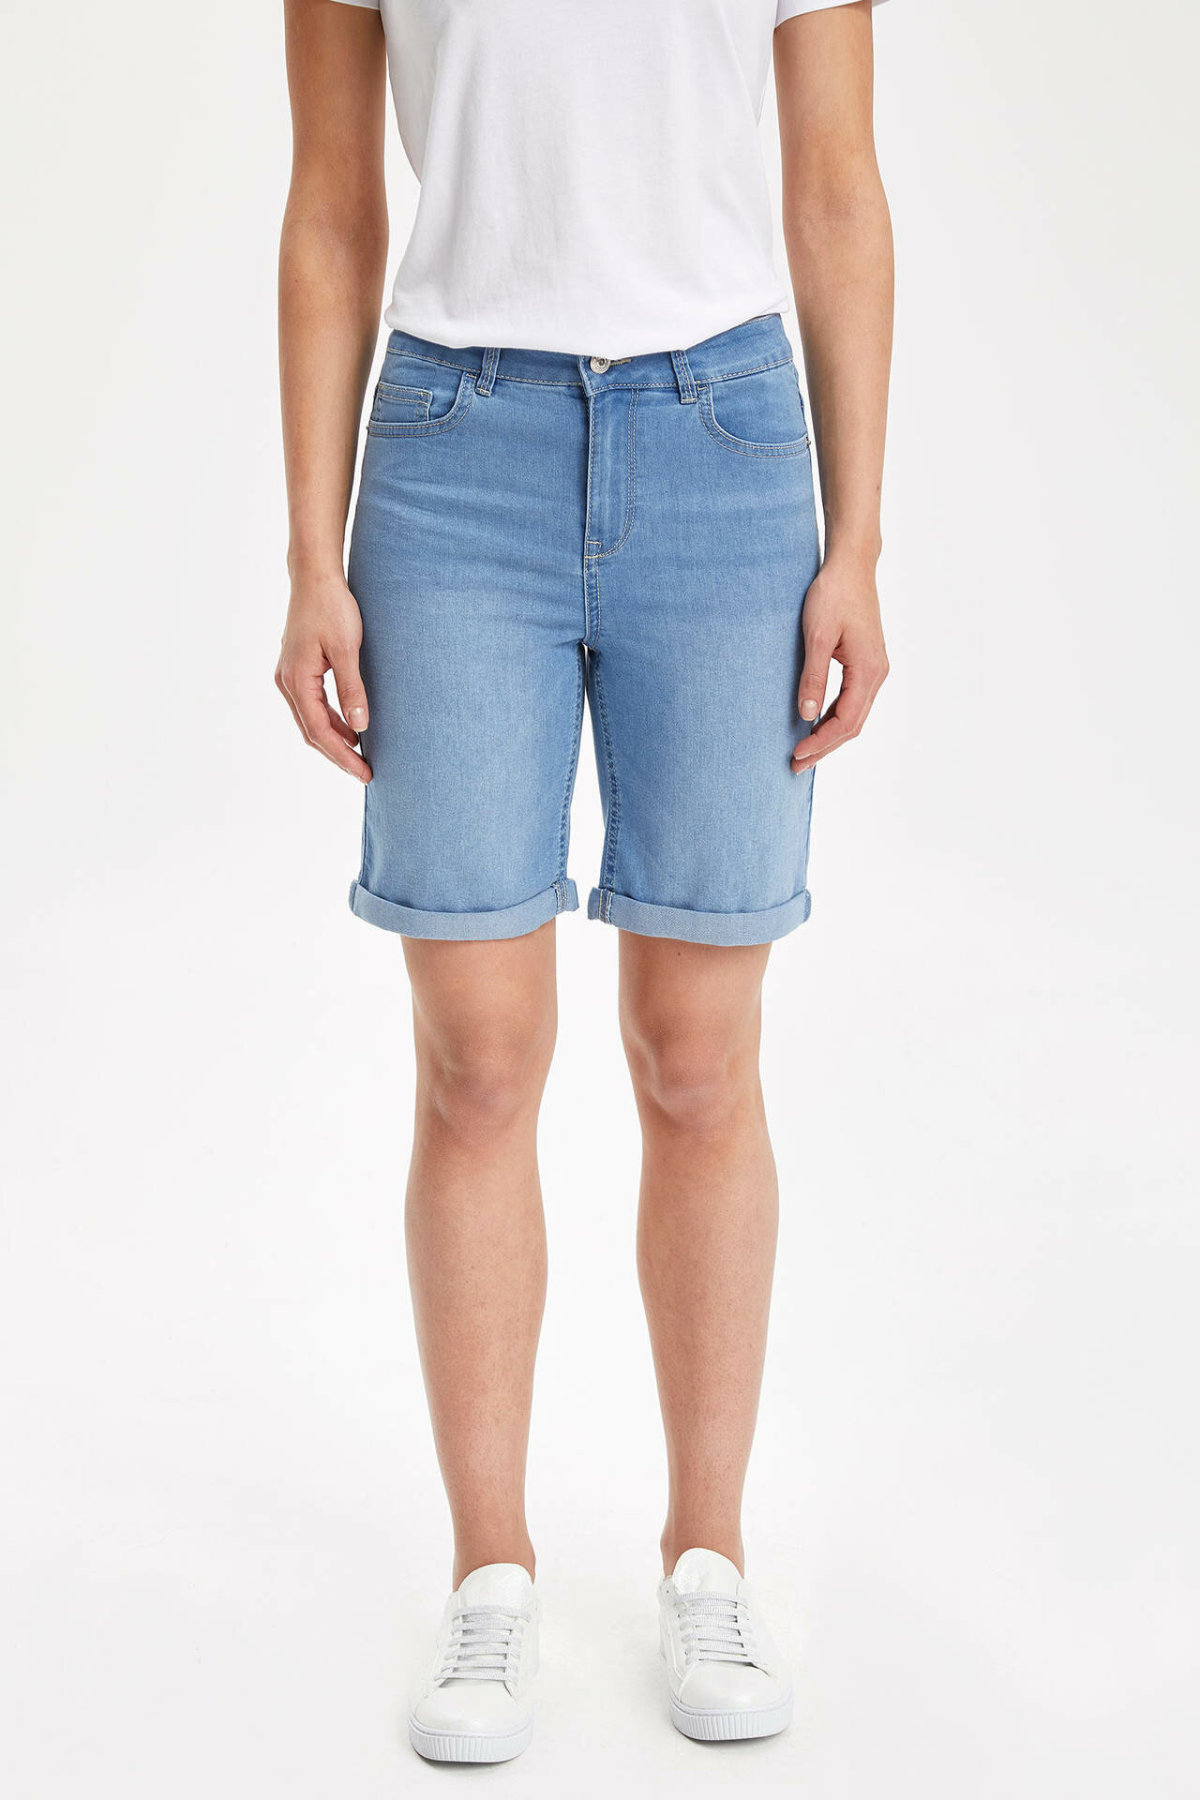 DeFacto Summer Dark Blue Skinny Denim Short Woman Mid-waist Denim Jeans Above Knees New Arrival Bermuda I7914AZ19SMNM28-I7914AZ19SM